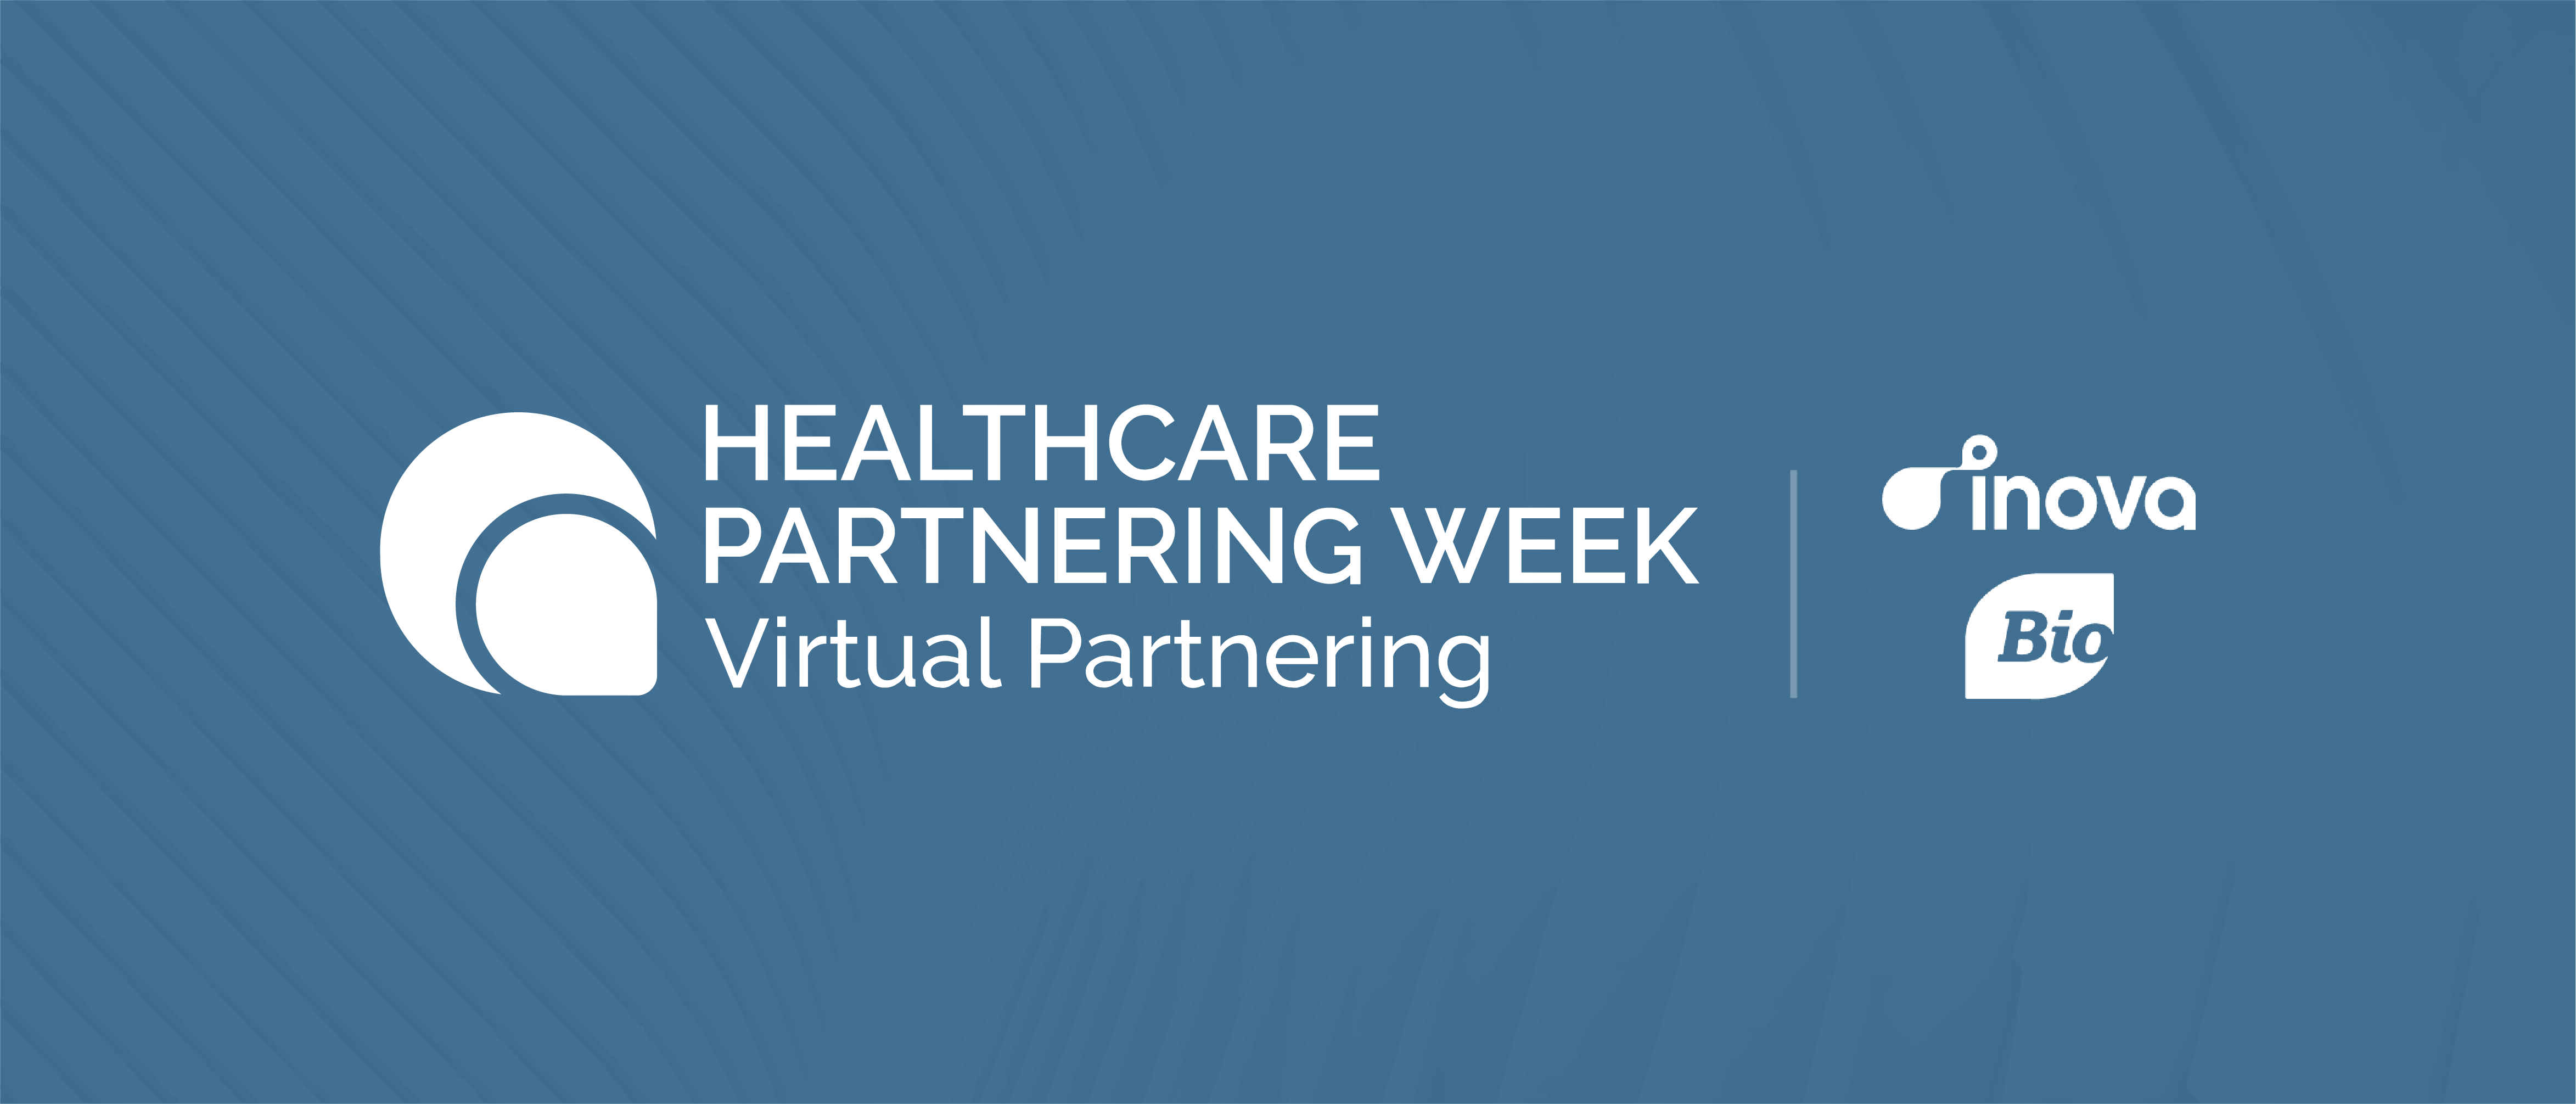 Healthcare Partnering Week